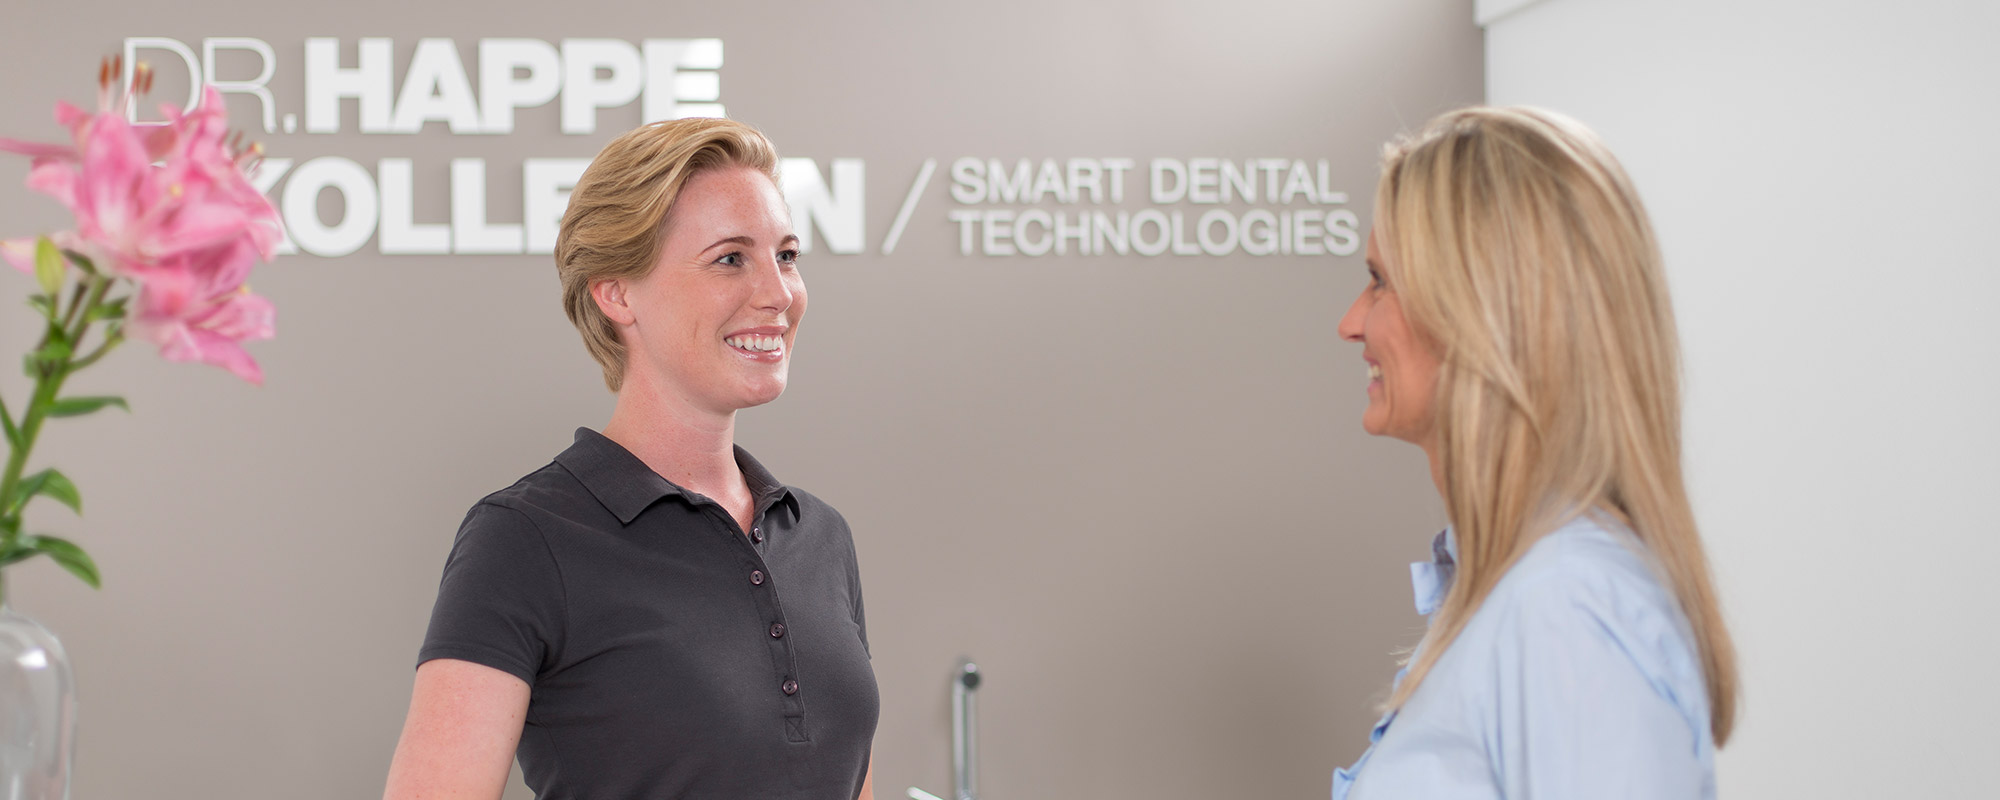 Smart Dental Technology